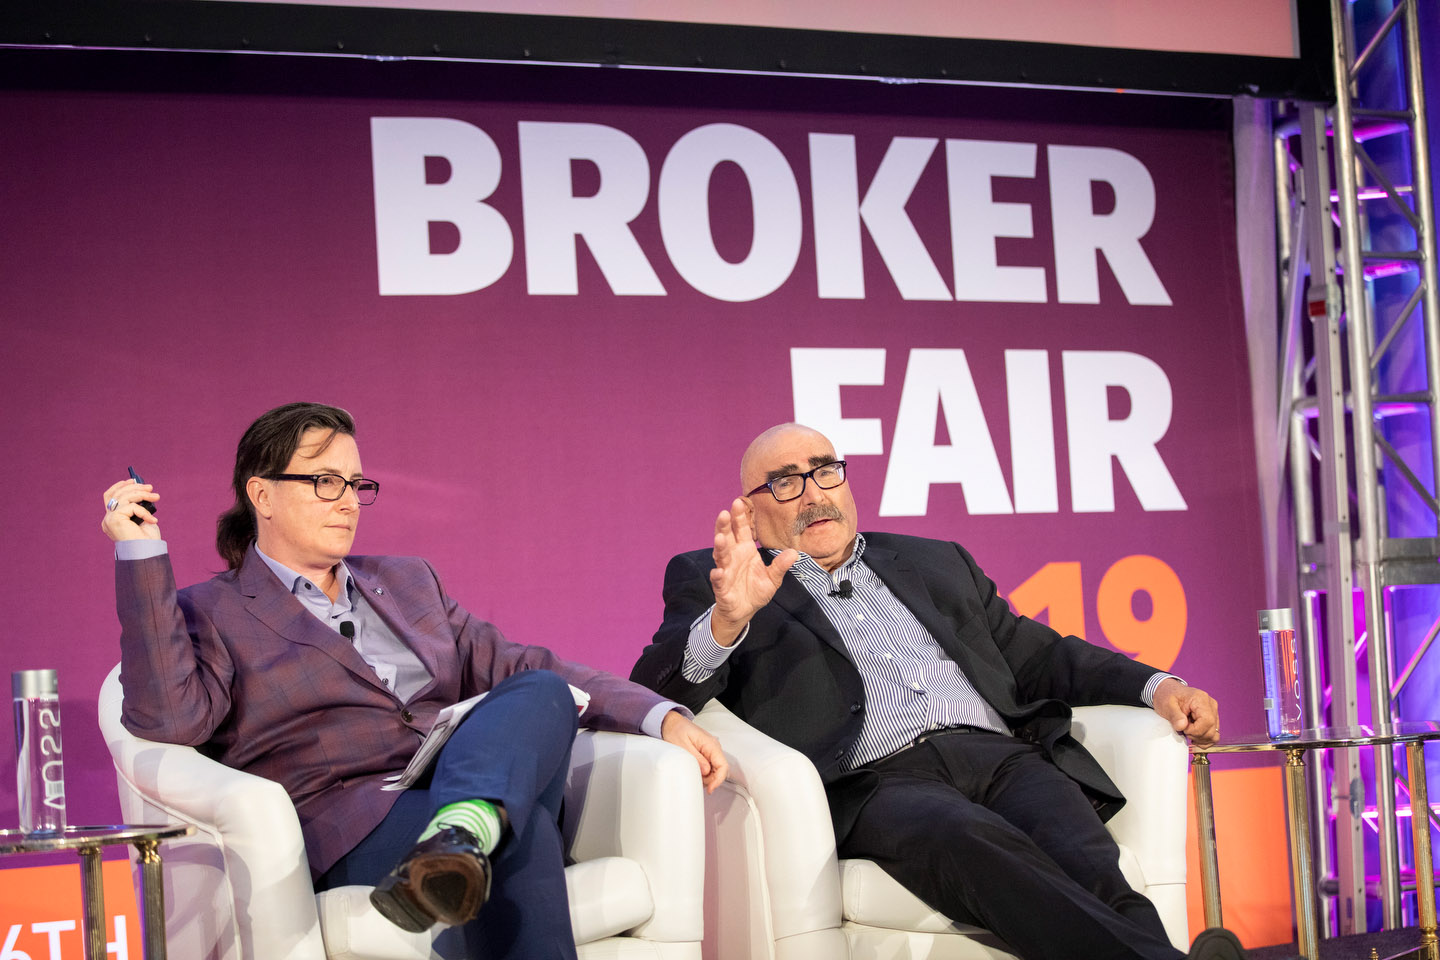 Broker Fair 2019 - Presented by deBanked - 450